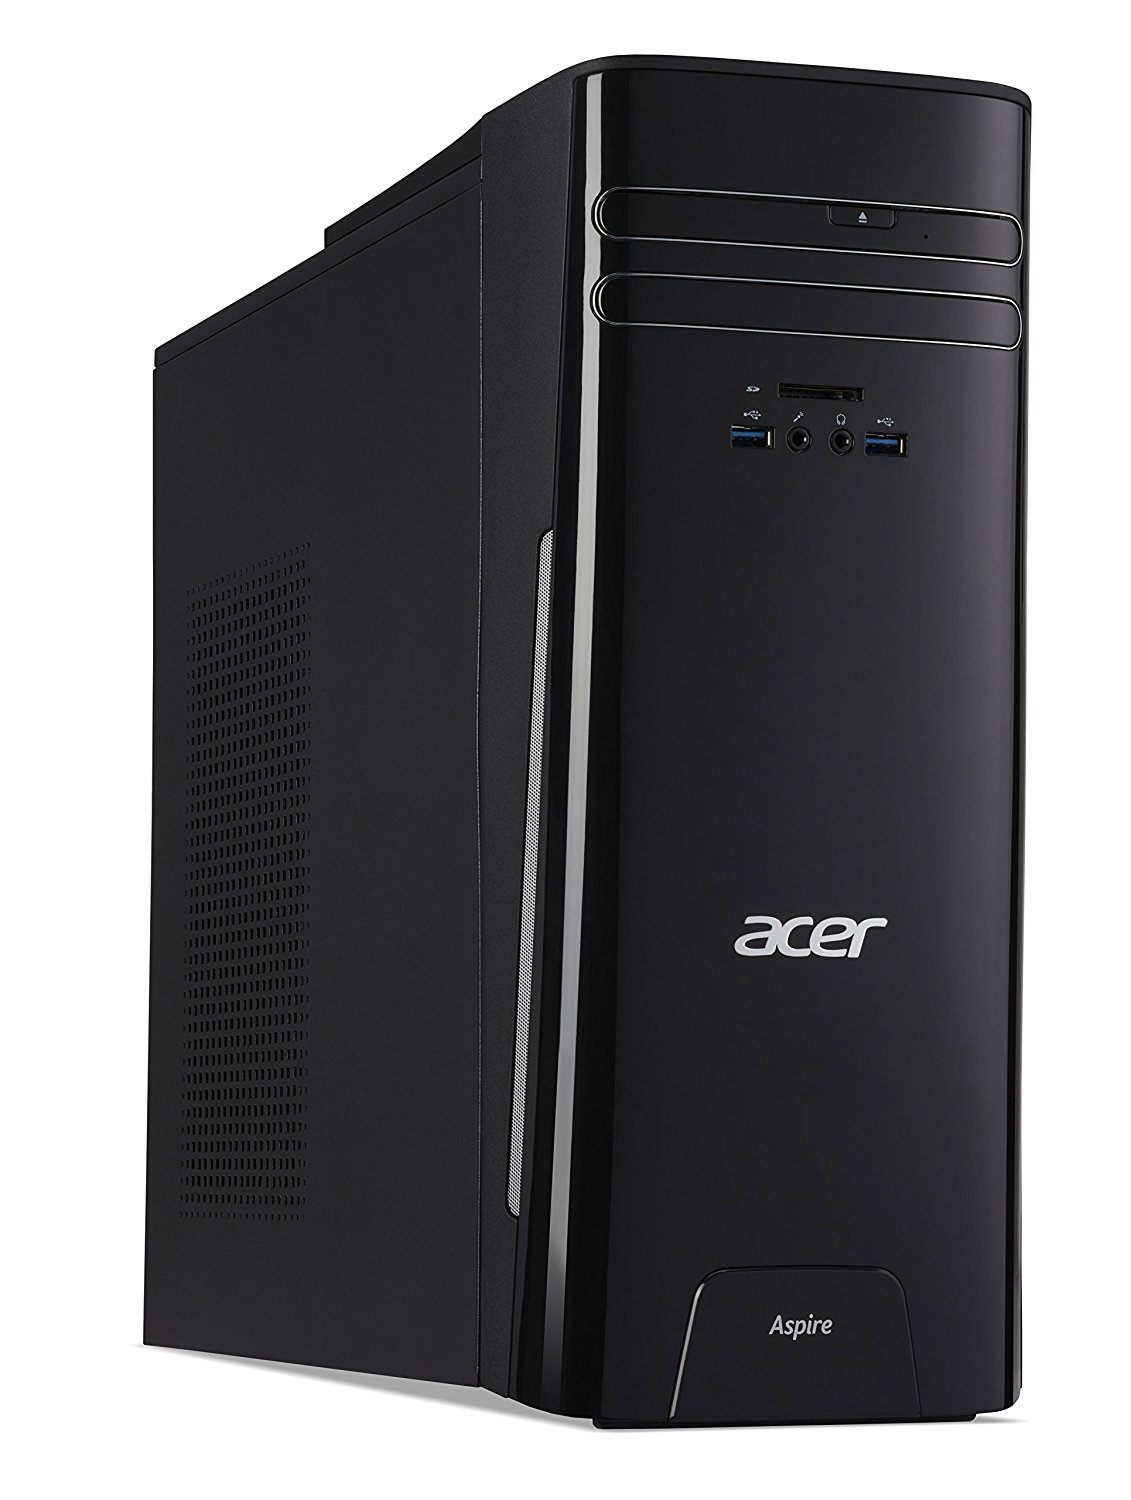 Acer Aspire TC-602 Intel USB 3.0 Drivers for PC